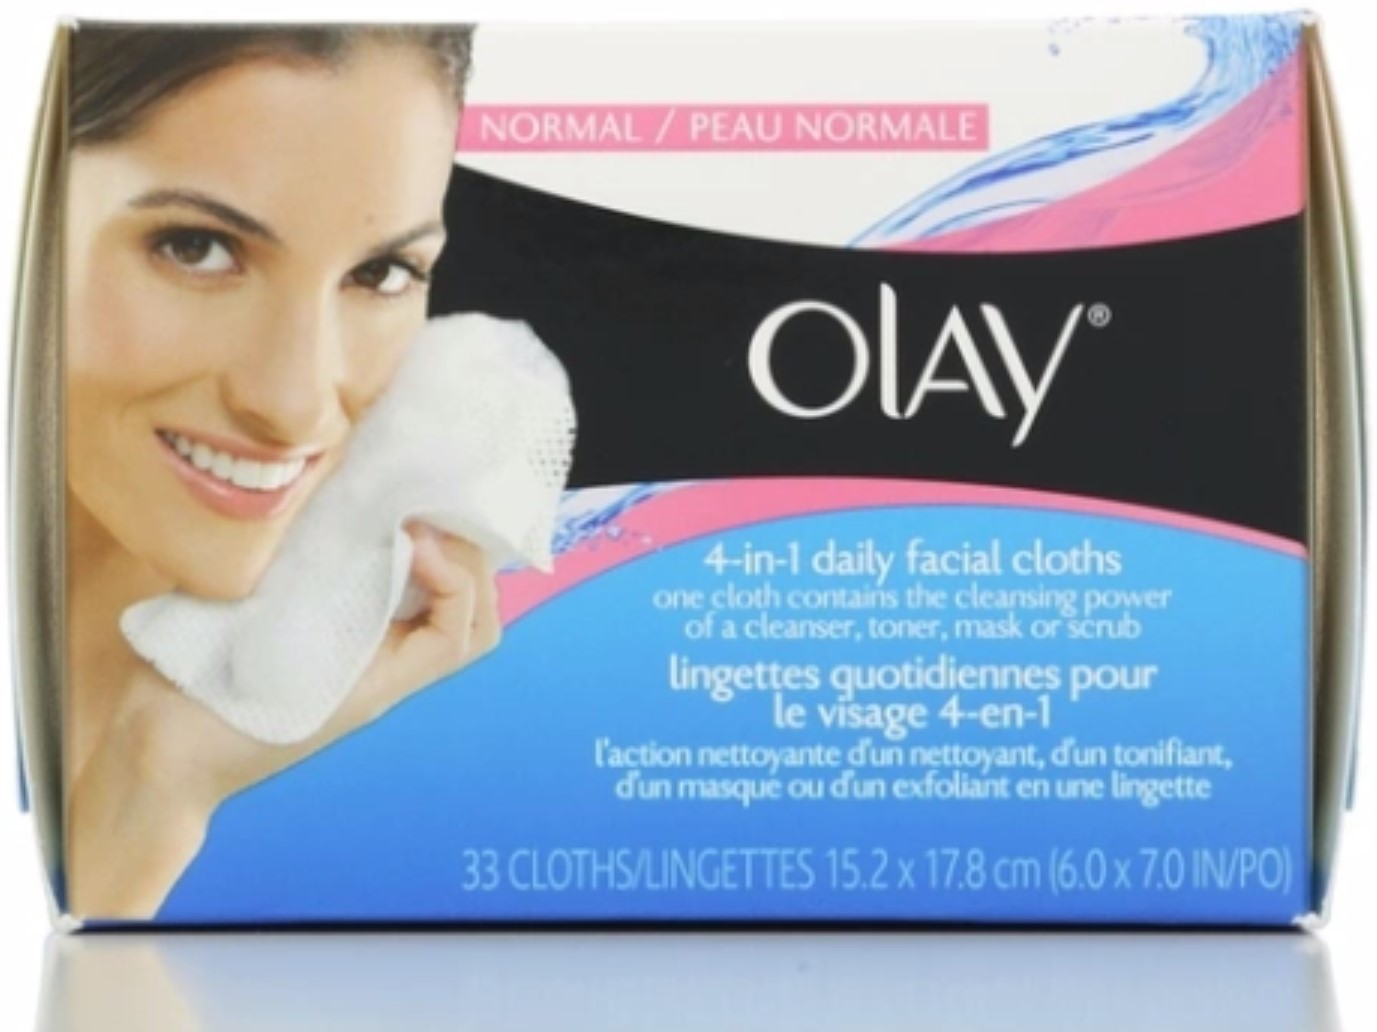 OLAY 4-in-1 Daily Facial Cloths Sensitive 33 Each (Pack of 2) eos Smooth Lip Balm Sphere, Honeysuckle Honeydew 0.25 oz (Pack of 3)